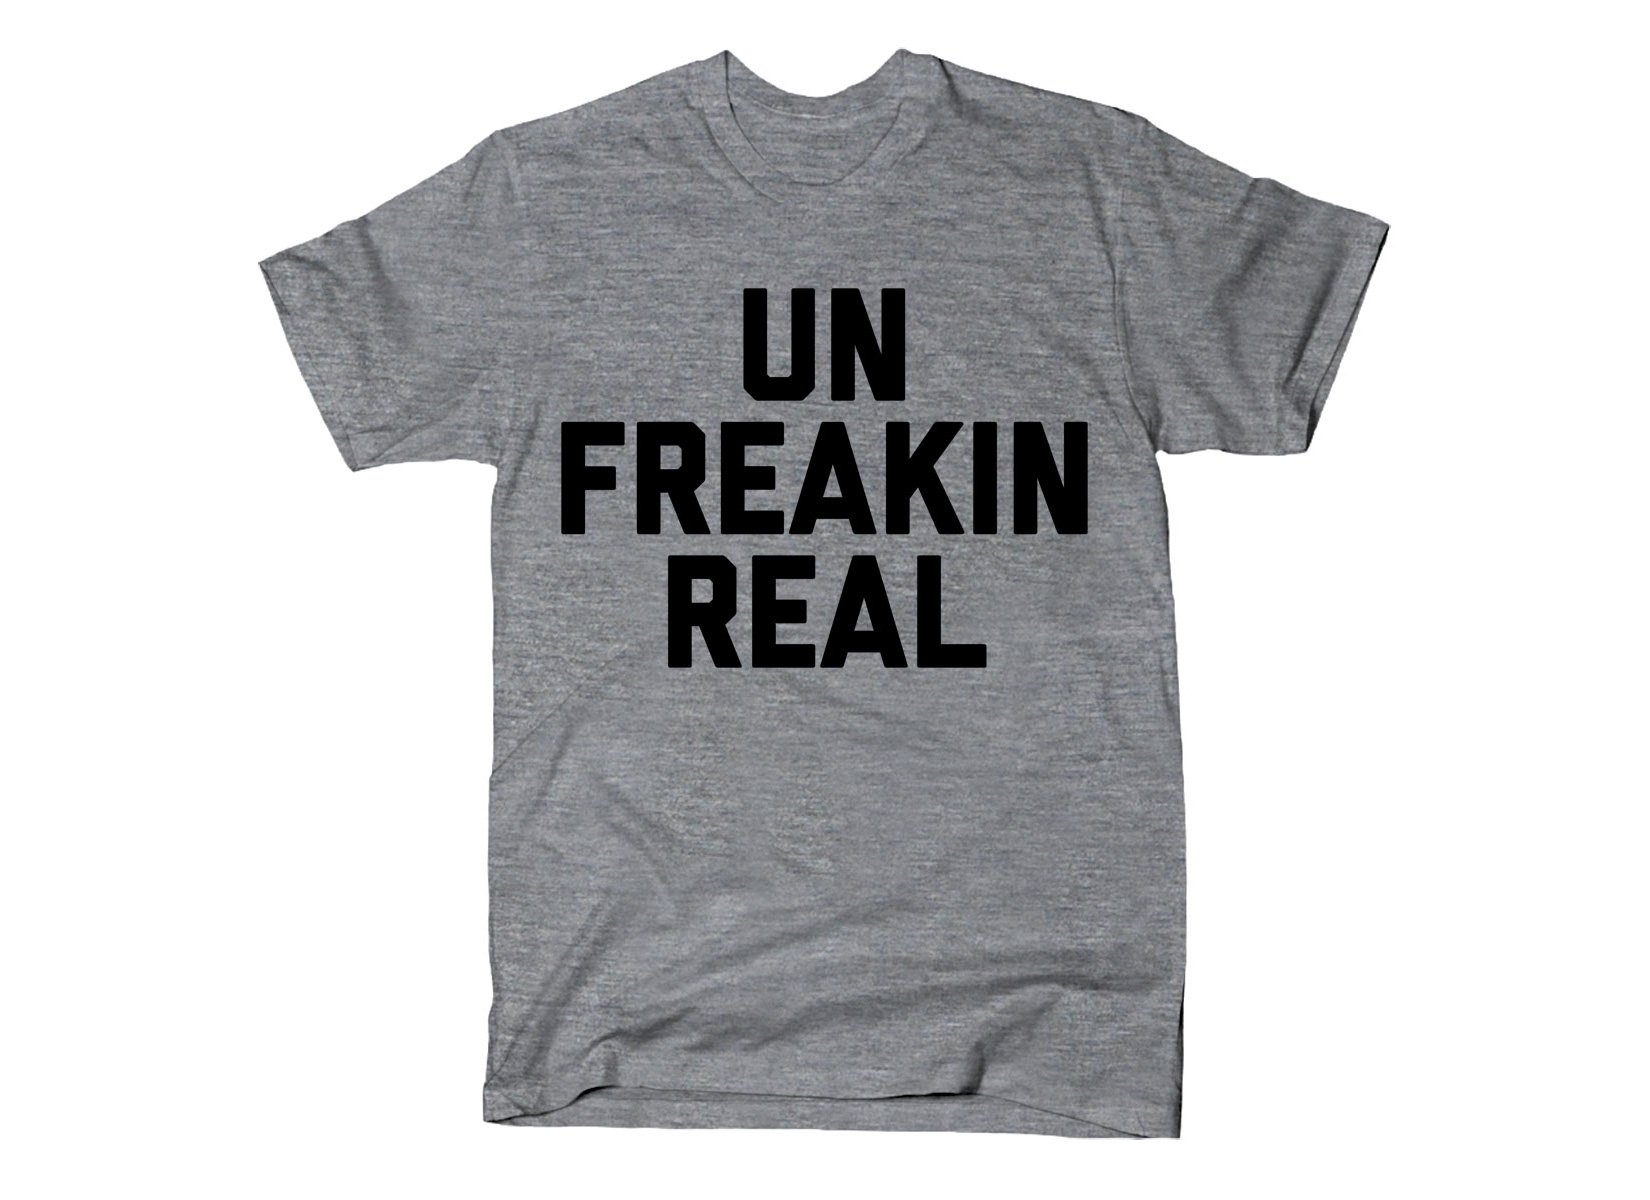 Un Freakin Real on Mens T-Shirt